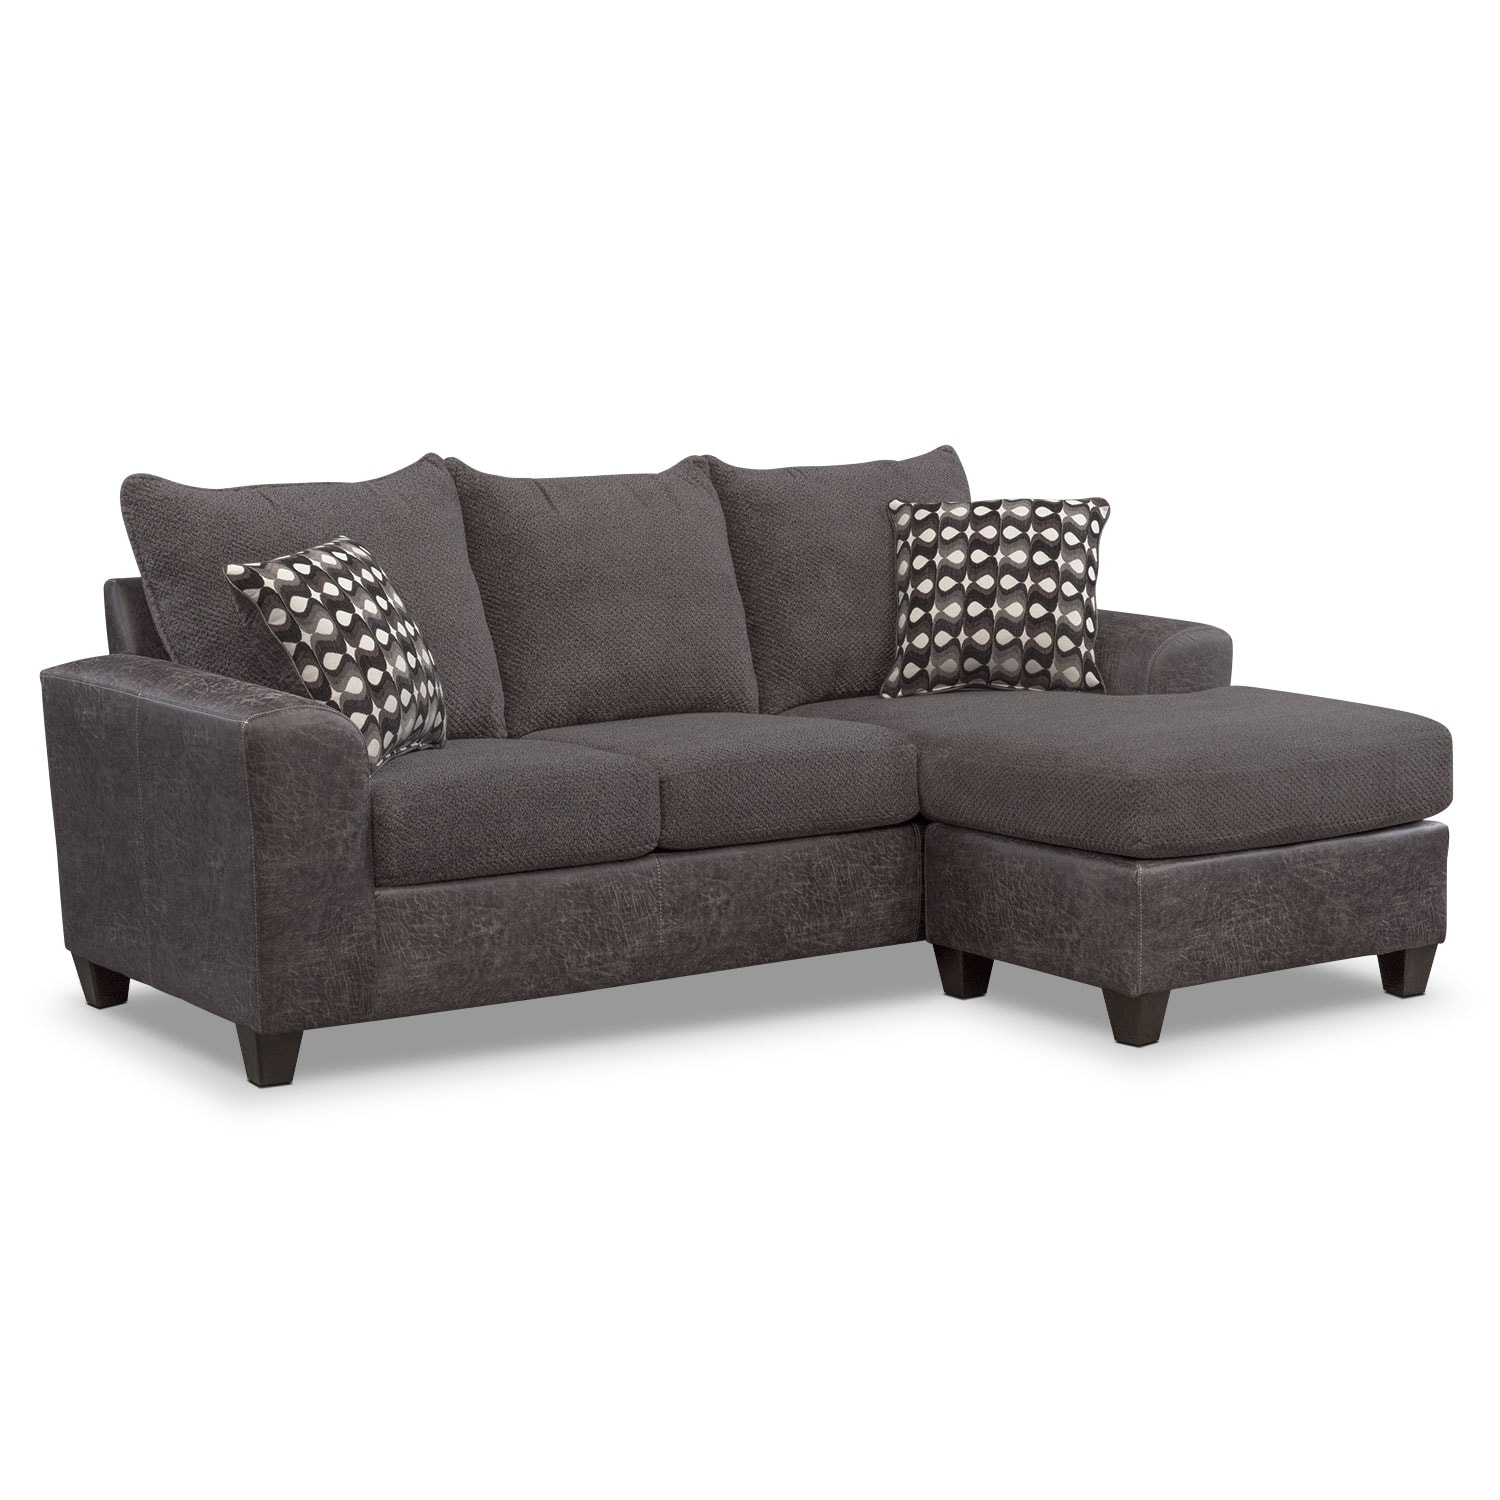 Brando sofa with chaise smoke american signature furniture for Chaise furniture